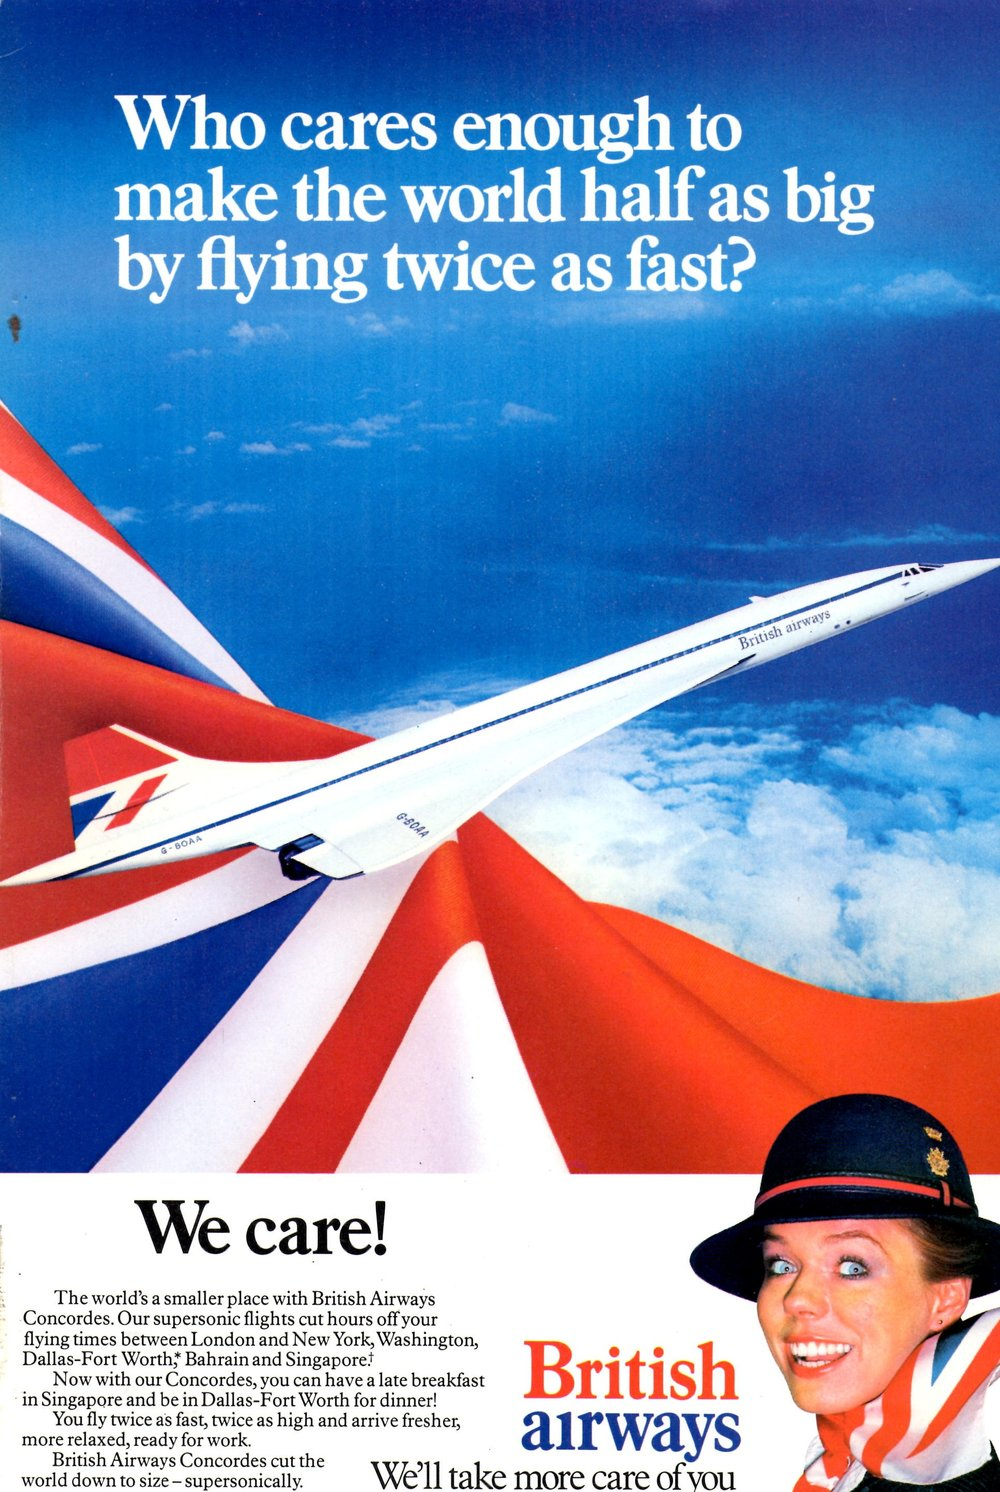 One of British Airways' promotional posters exalting the glamour of its Concorde, photo from British Airways